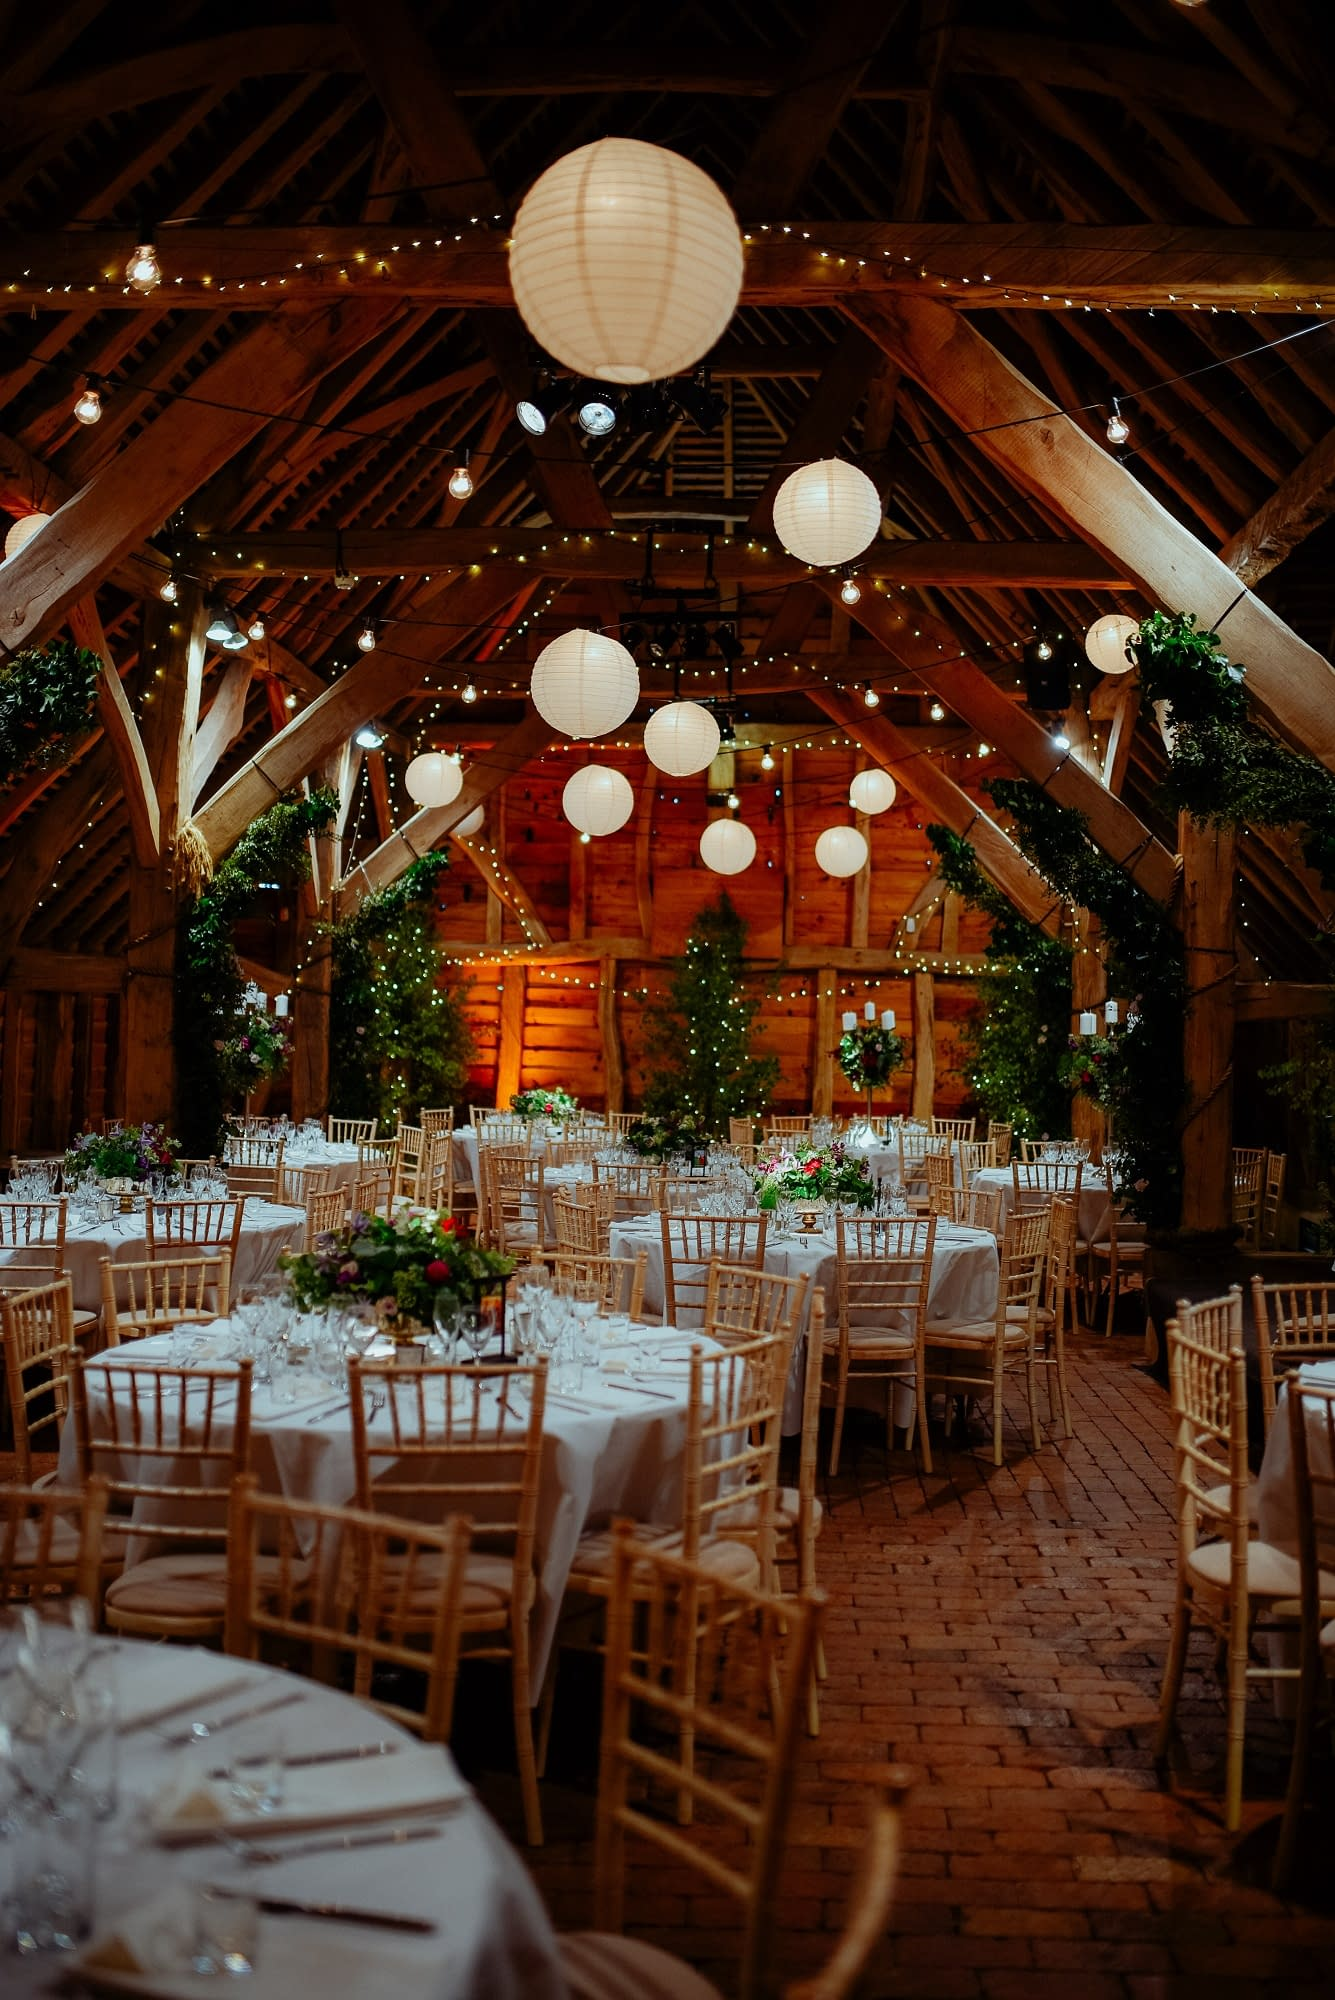 Overhead festoon lighting with paper lanterns, pinspot lights to table centres and birch trees with fairy lights at Gildings Farm, UK wedding venue